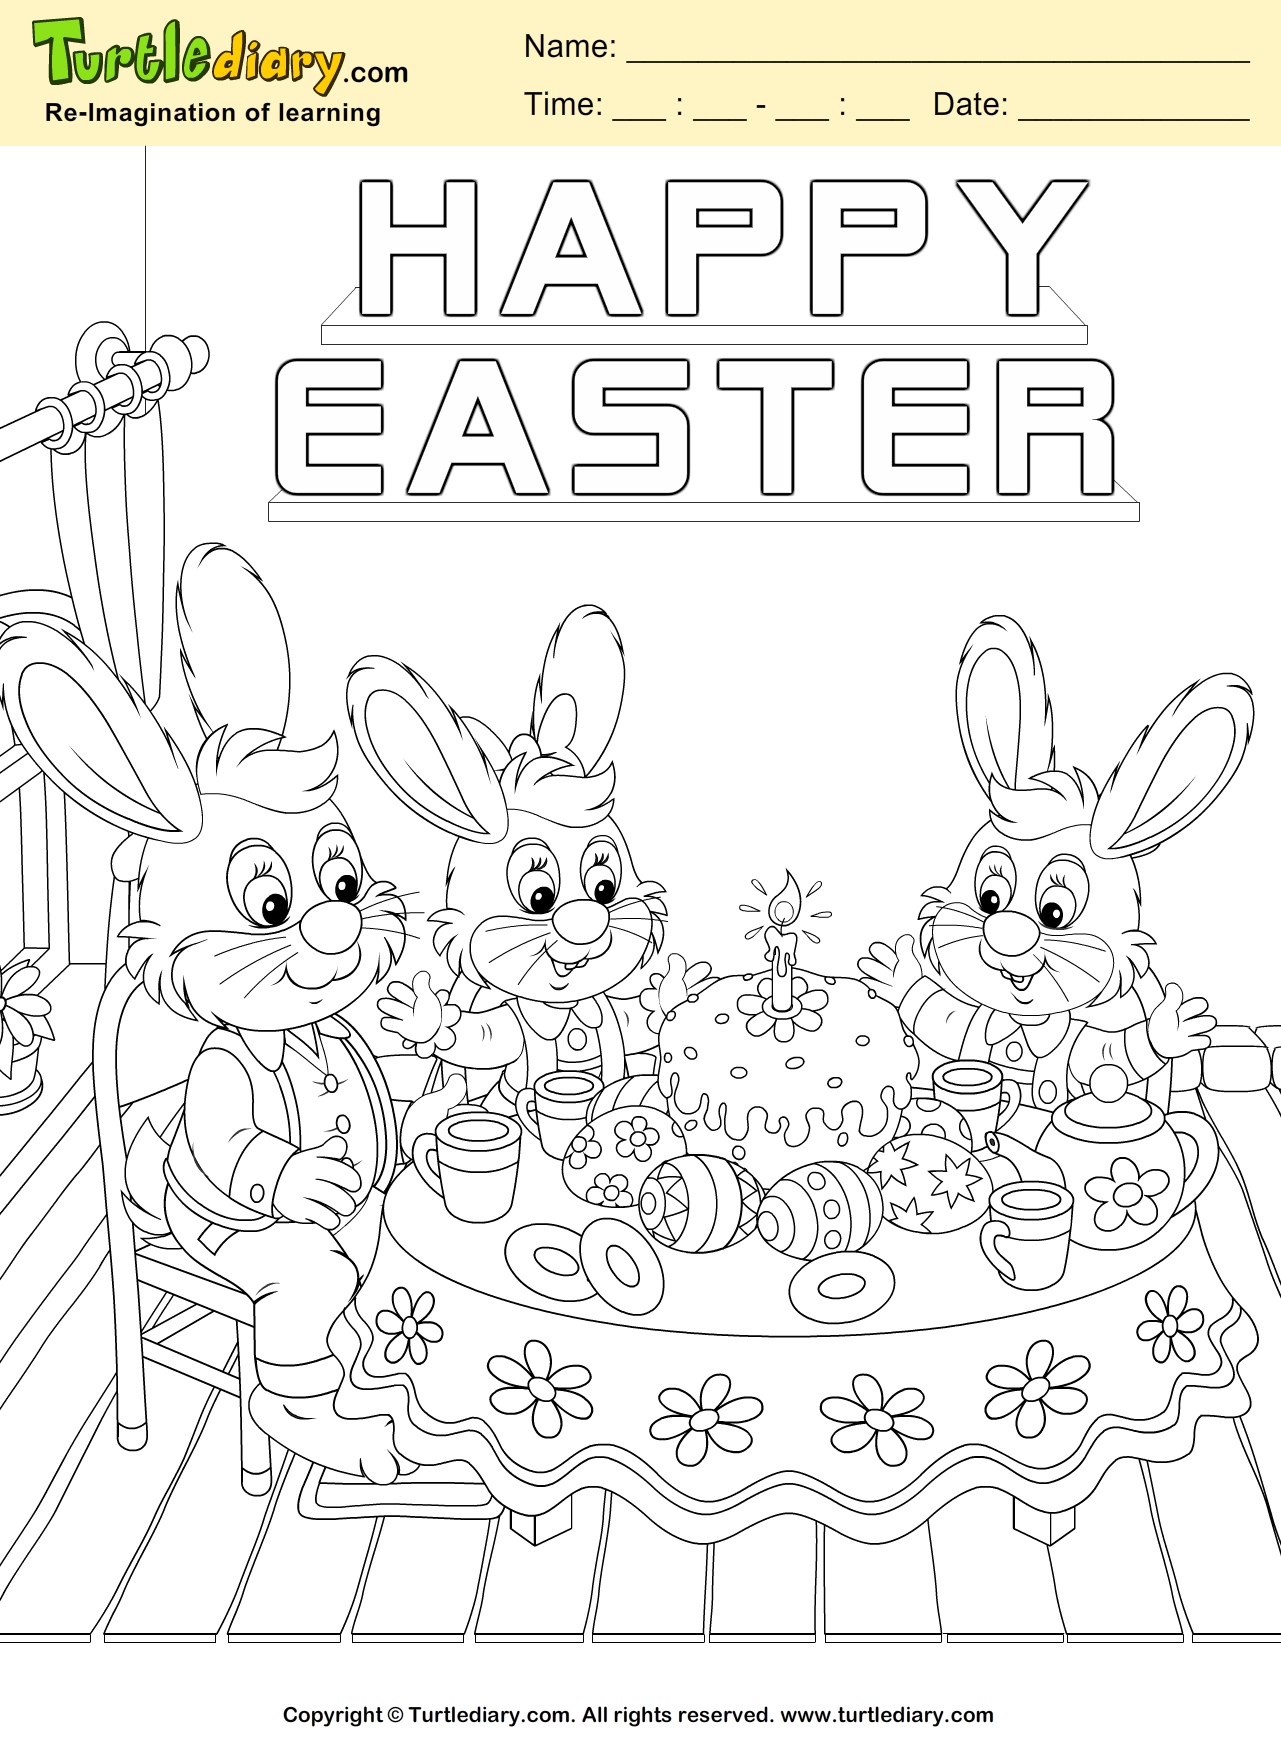 Happy Bunny Coloring Pages - Coloring Home | 1754x1281